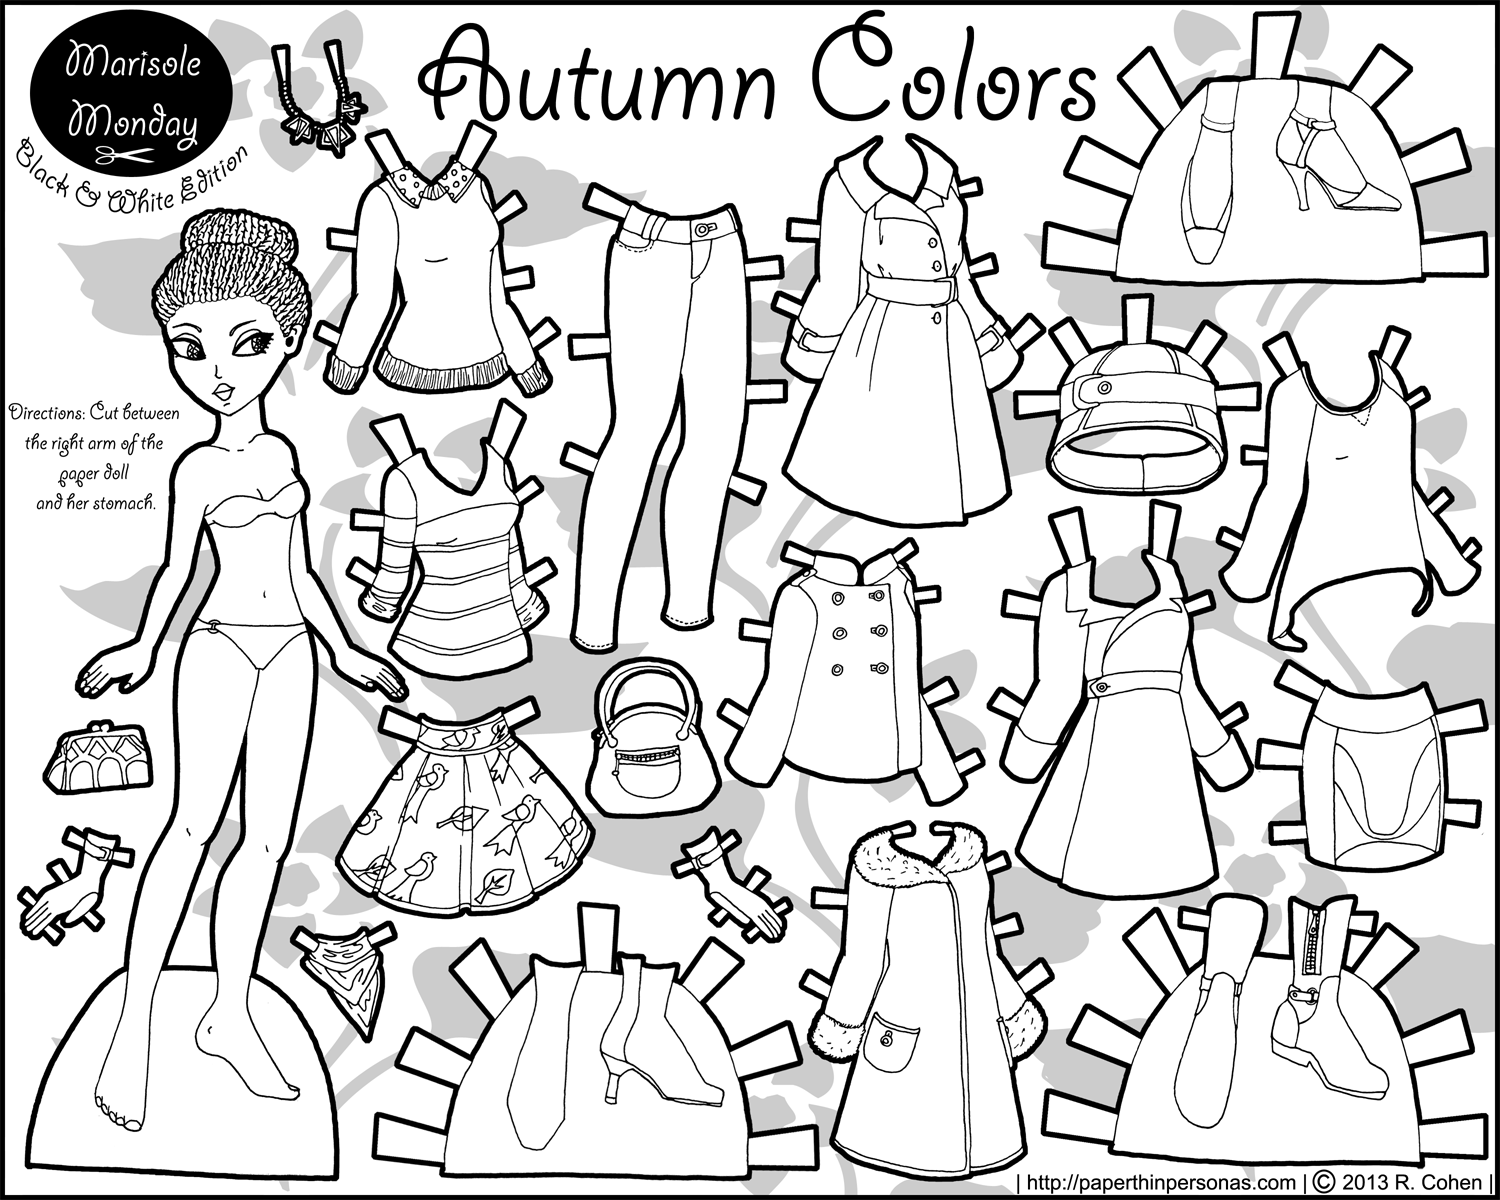 Marisole Monday Paper Dolls In Black And White